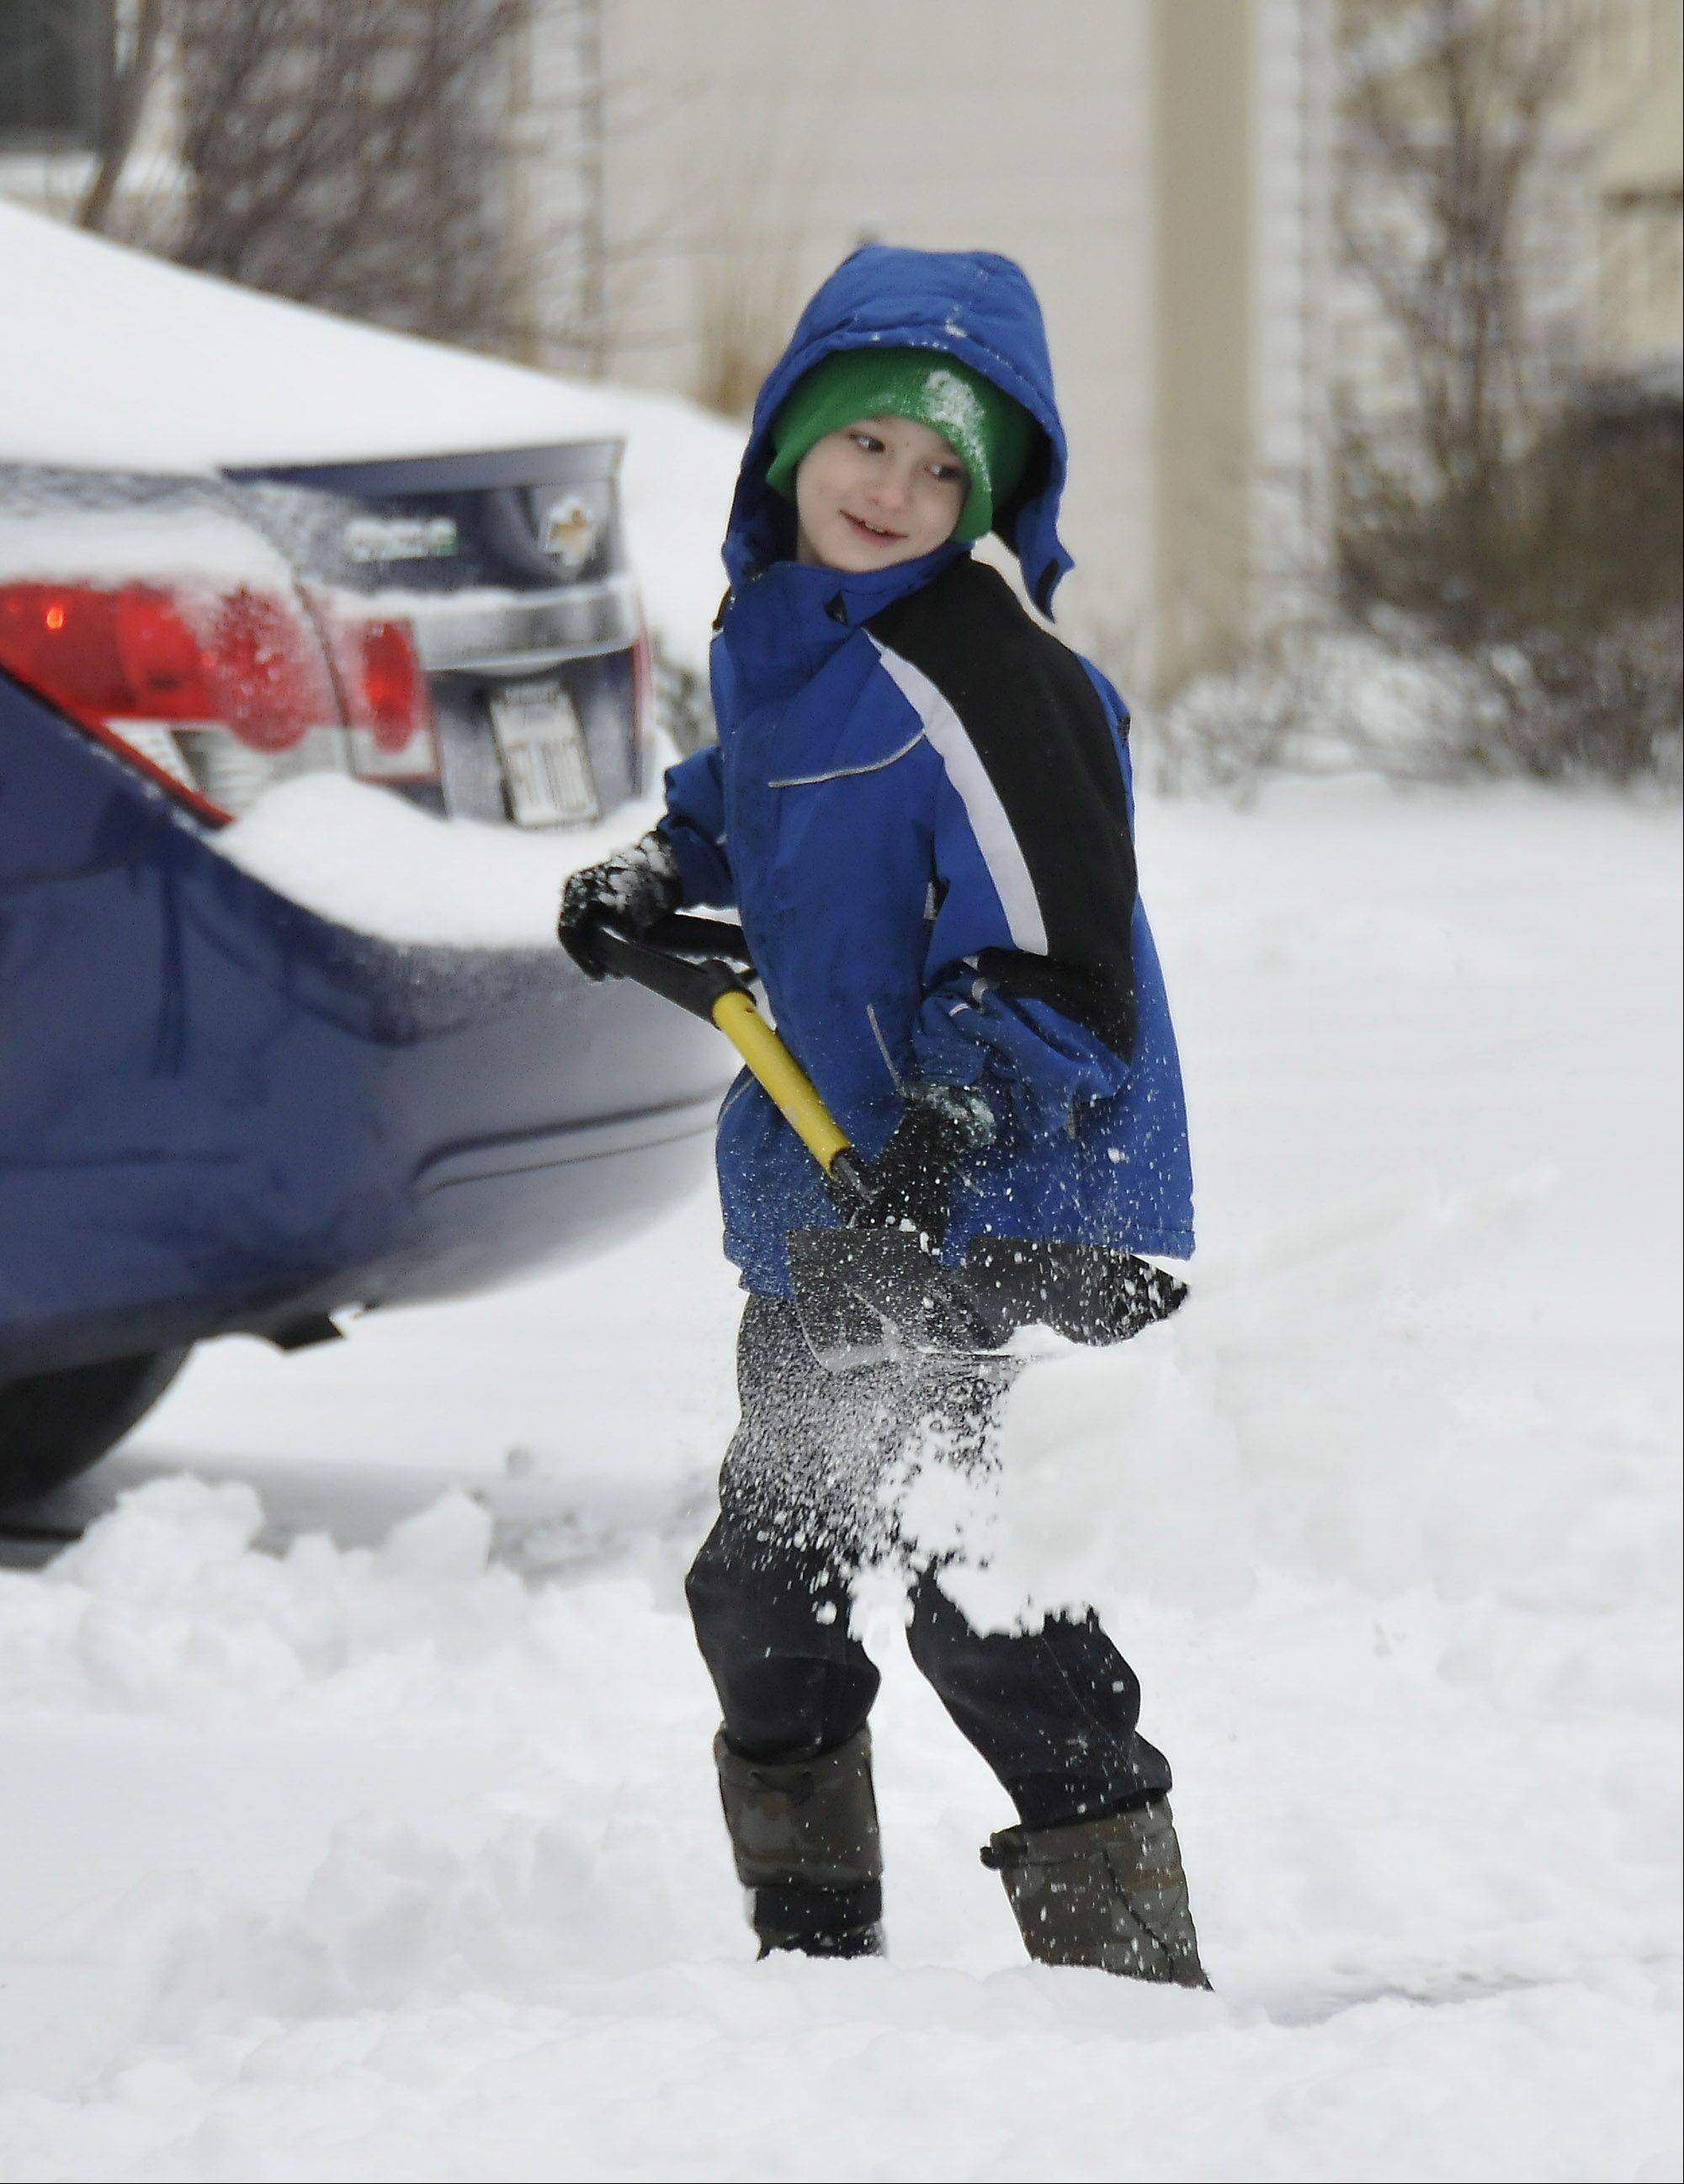 Alec Enright had the time, and the energy, to help his mother Kelly shovel snow at their home in Itasca before going to his third grade class at Franzen Elementary School Friday morning.